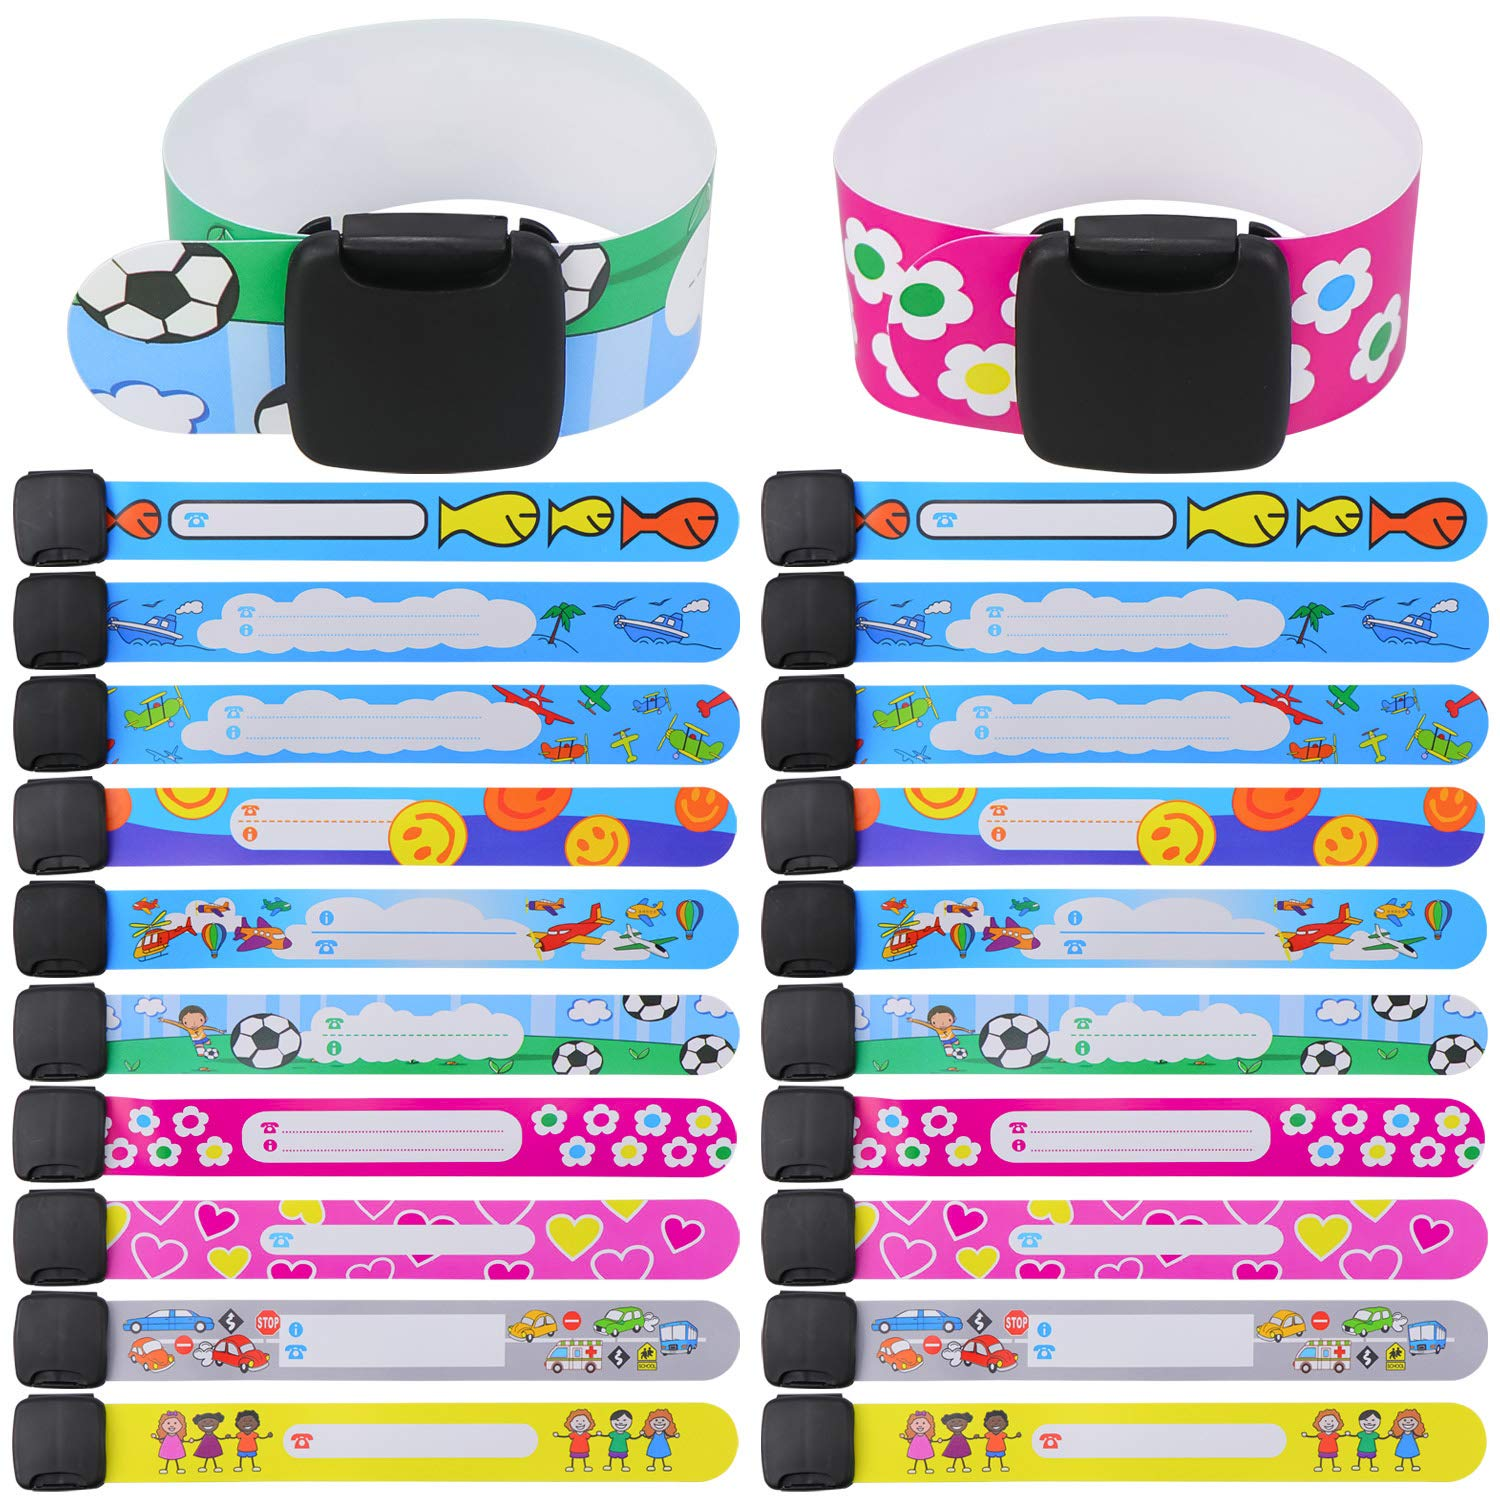 DireeKids Child ID Bands 12 Pack Never Fade ID Wristband for Kids Safety Name a